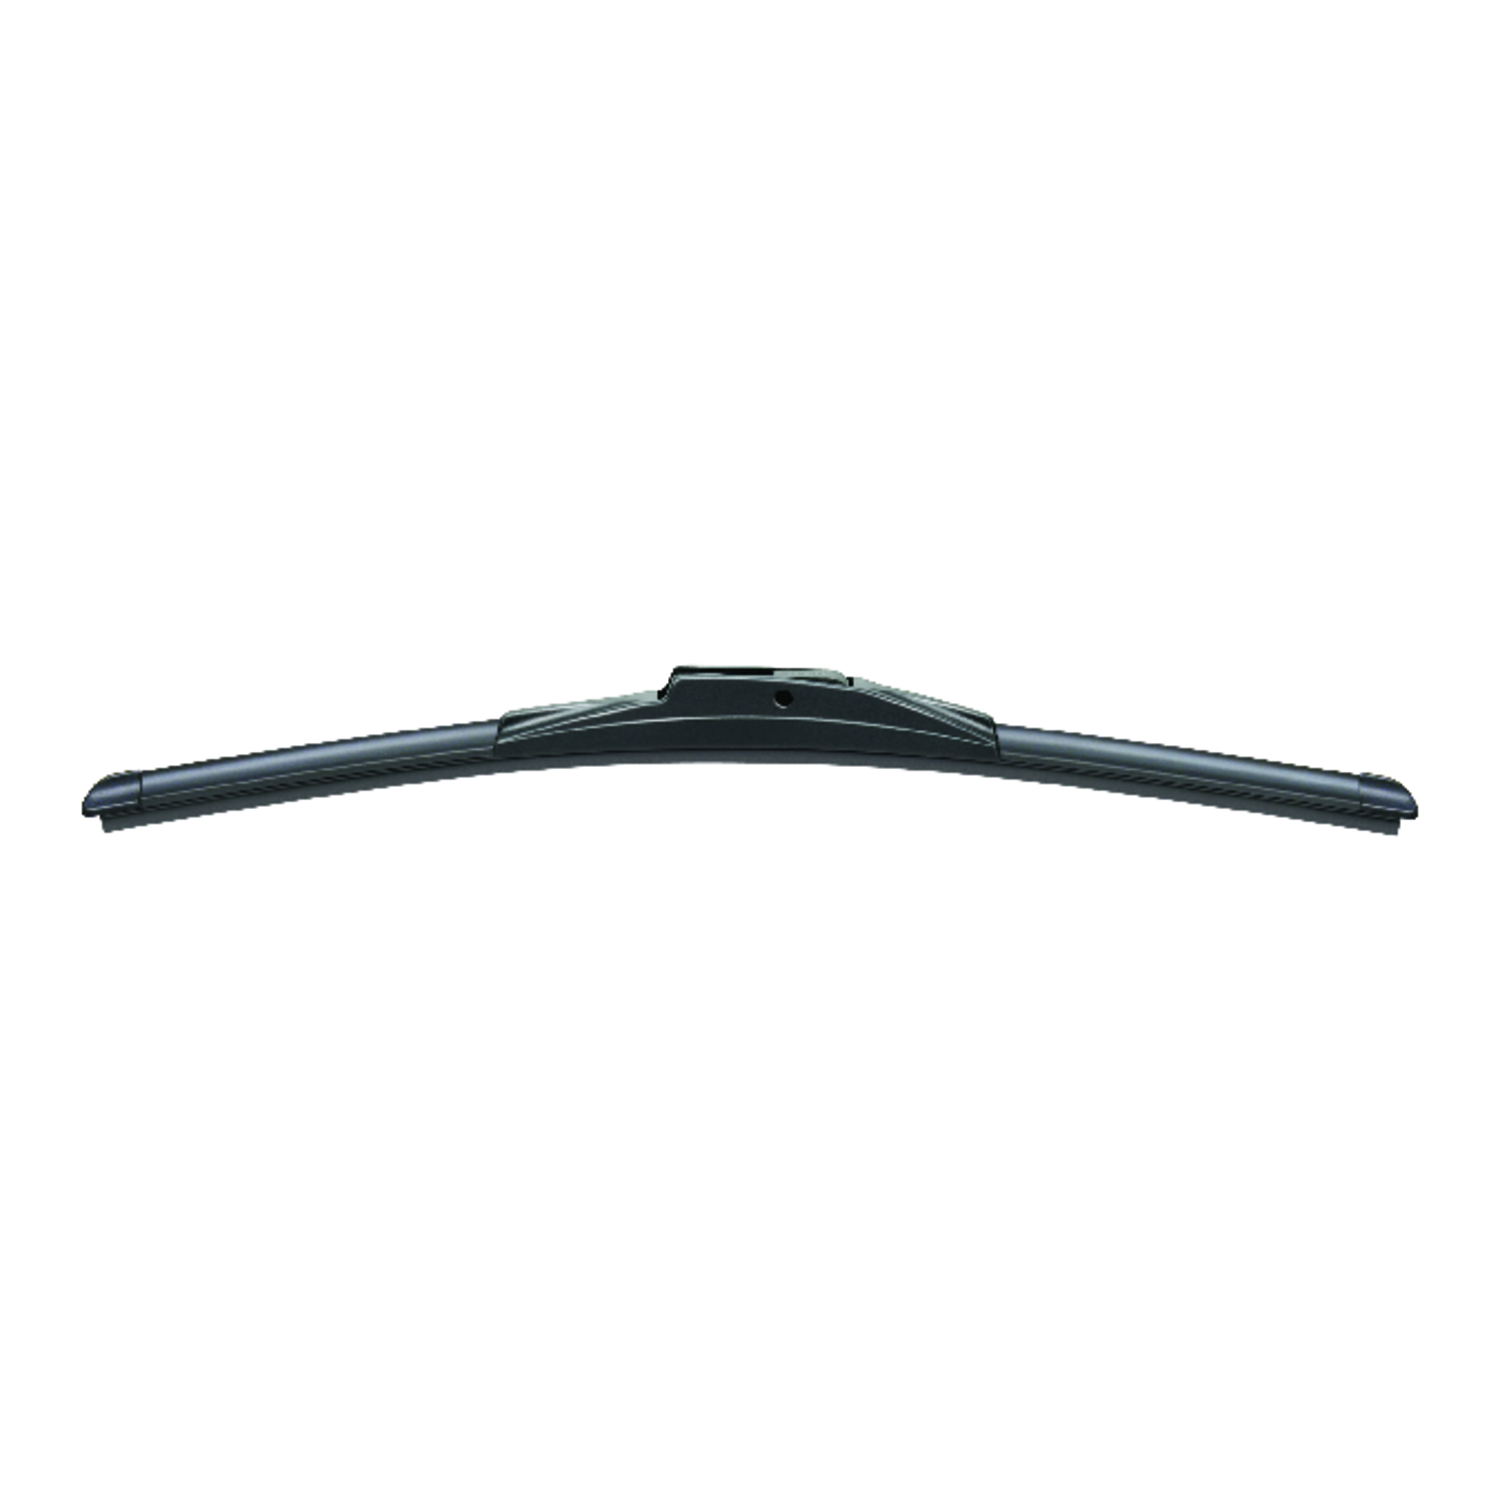 Trico  Neoform Blade  18 in. All Season  Windshield Wiper Blade